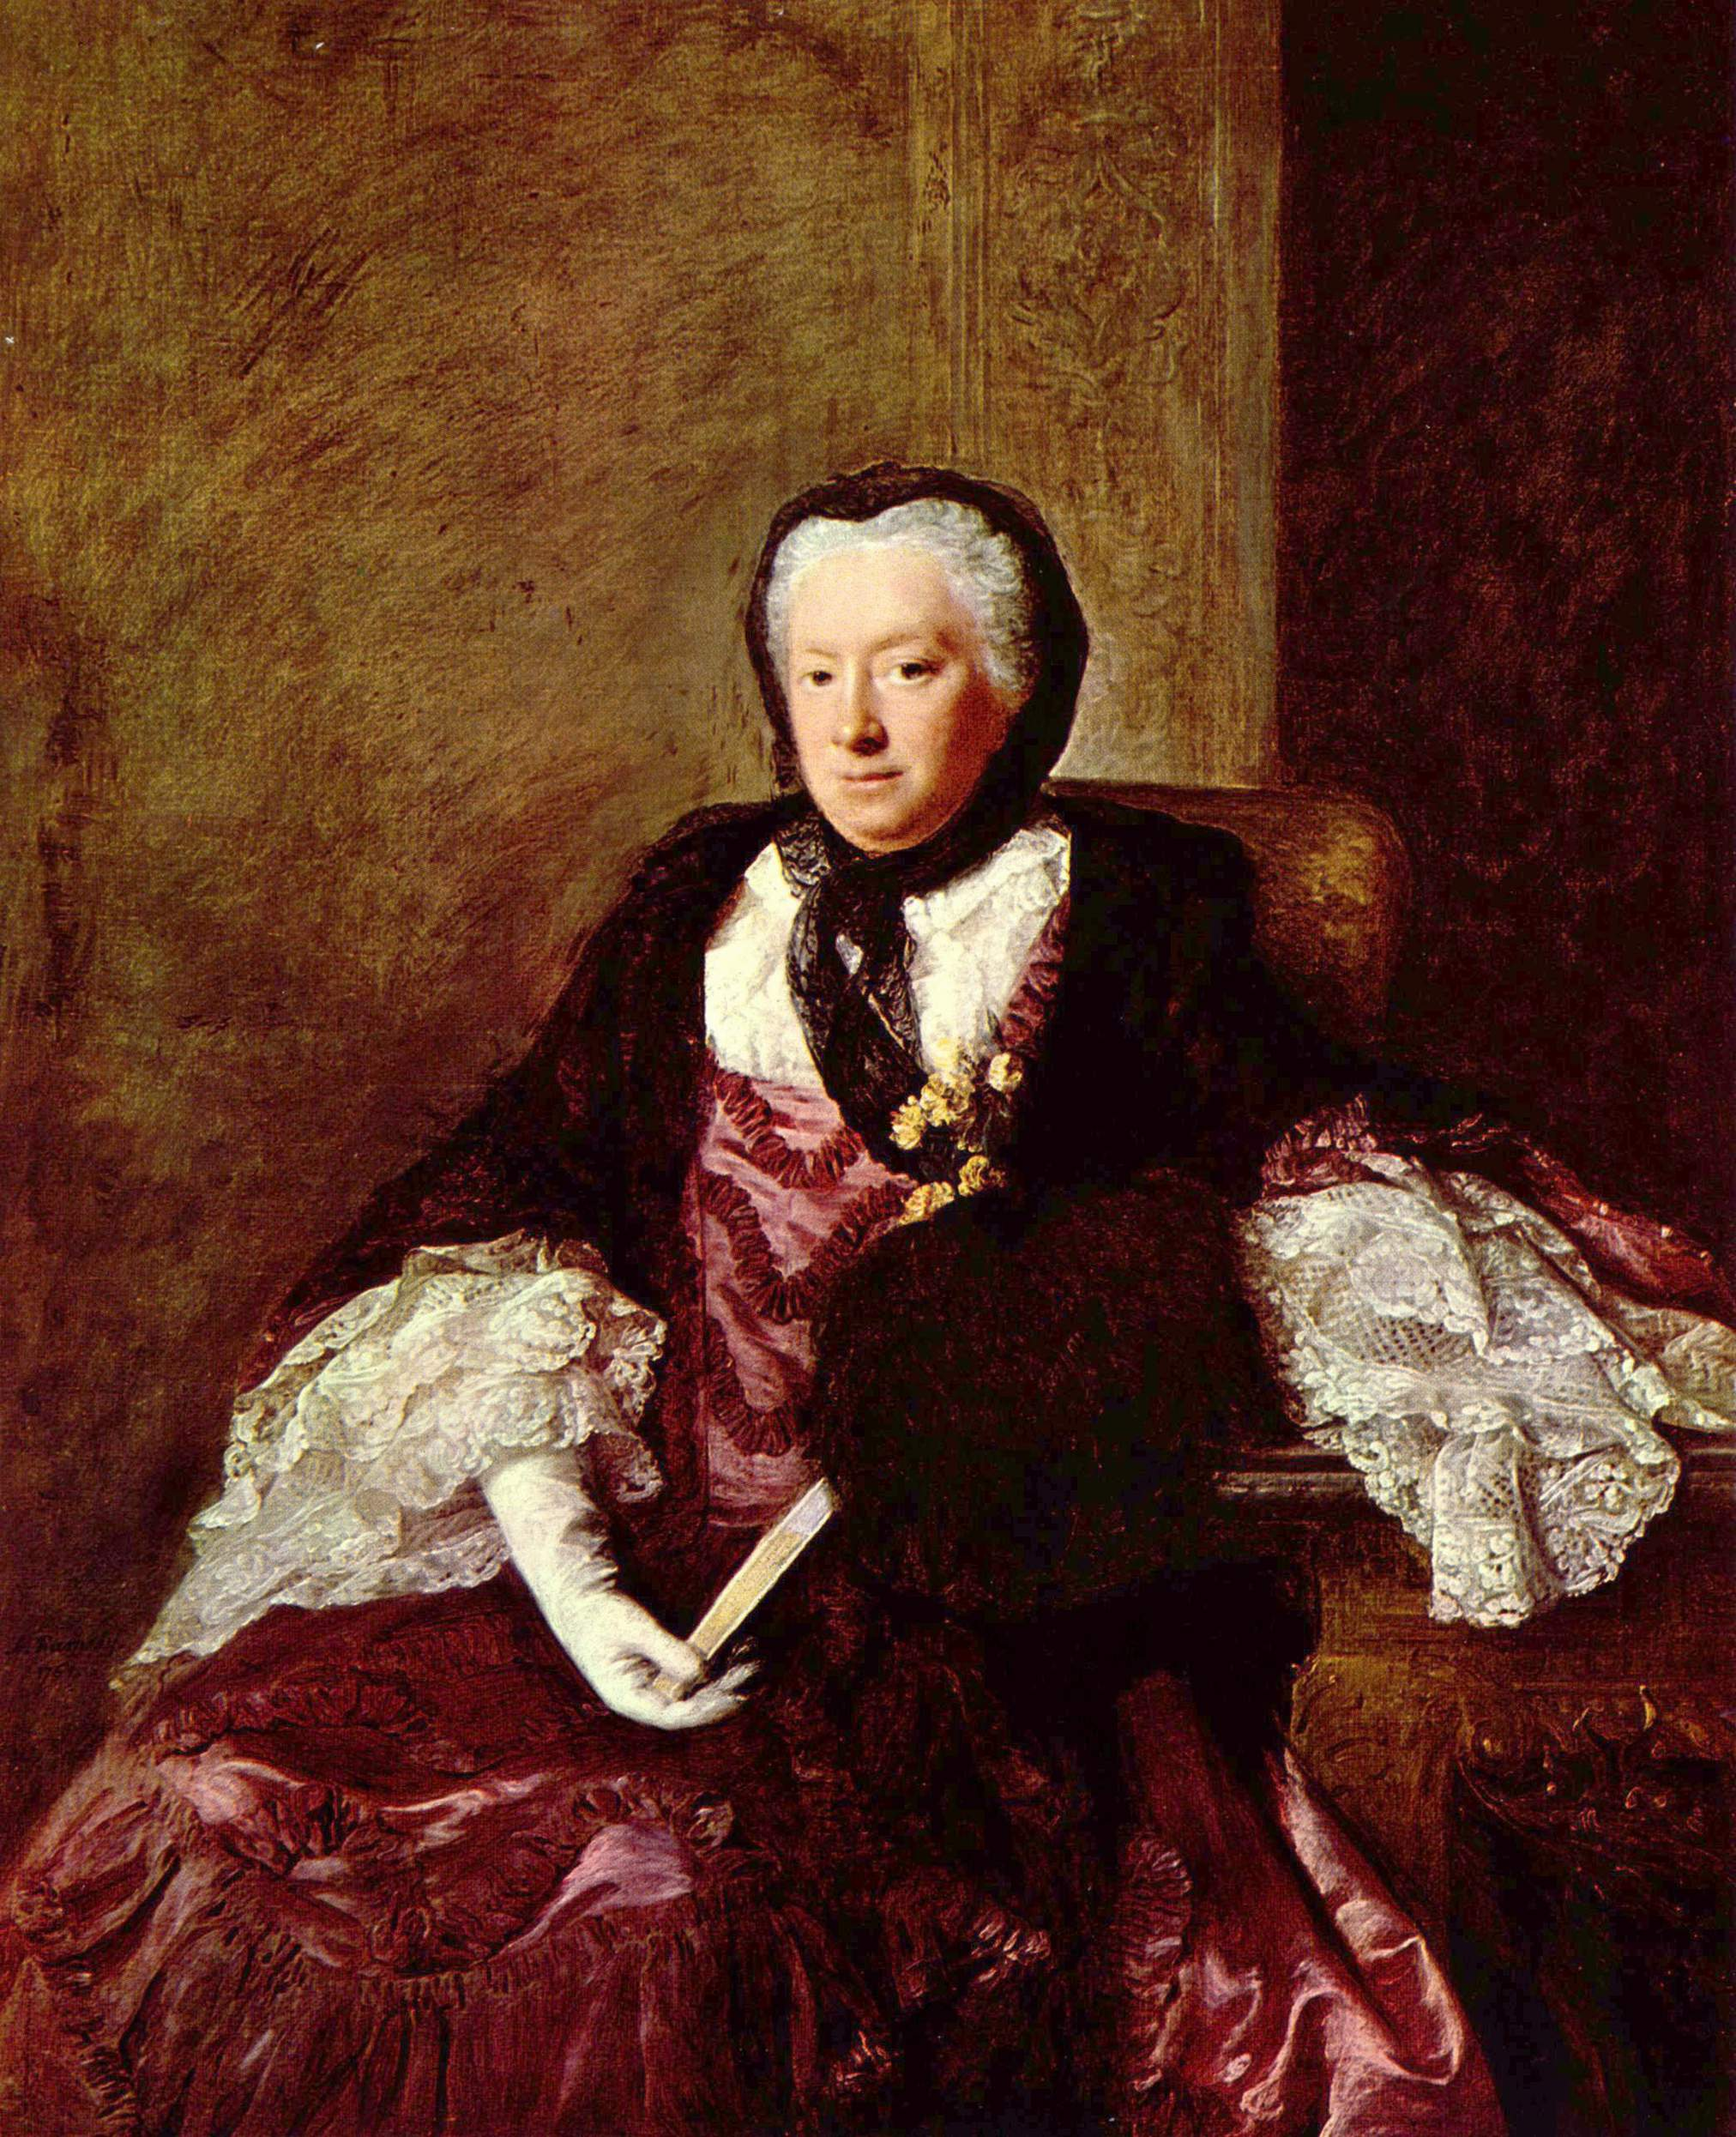 http://upload.wikimedia.org/wikipedia/commons/3/3e/Allan_Ramsay_002.jpg